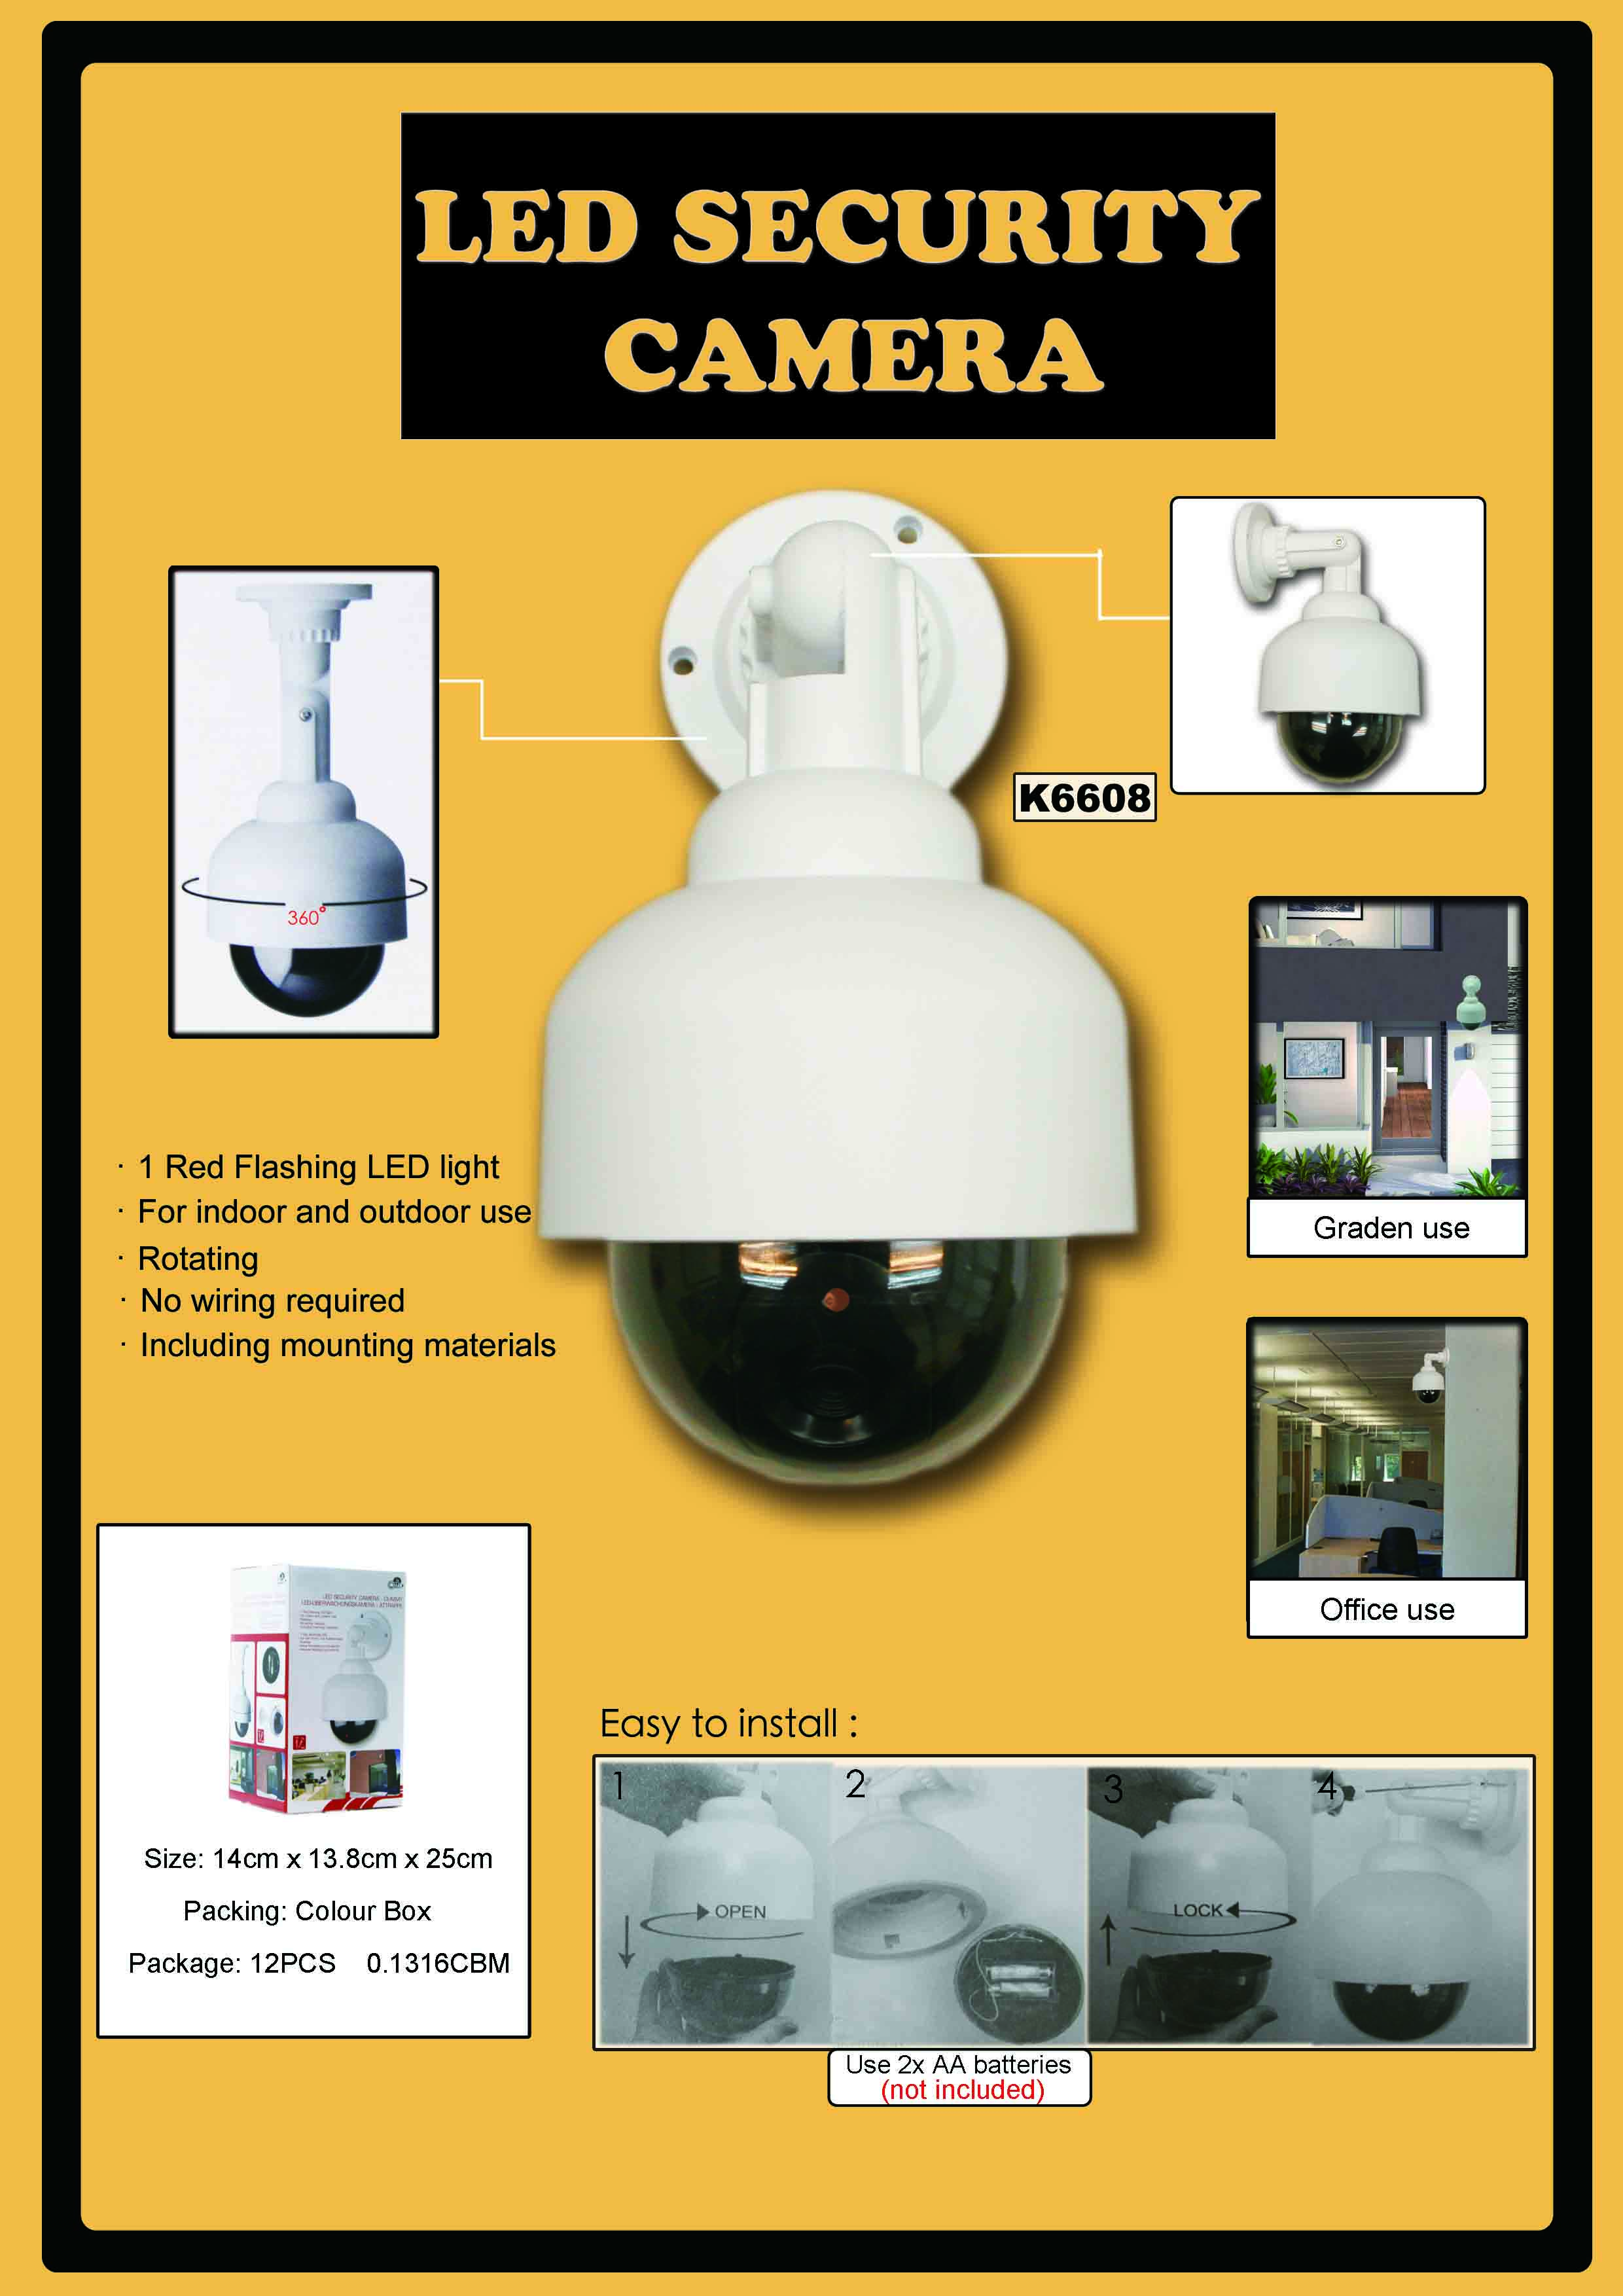 K6608 LED SECURITY DUMMY CAMERA